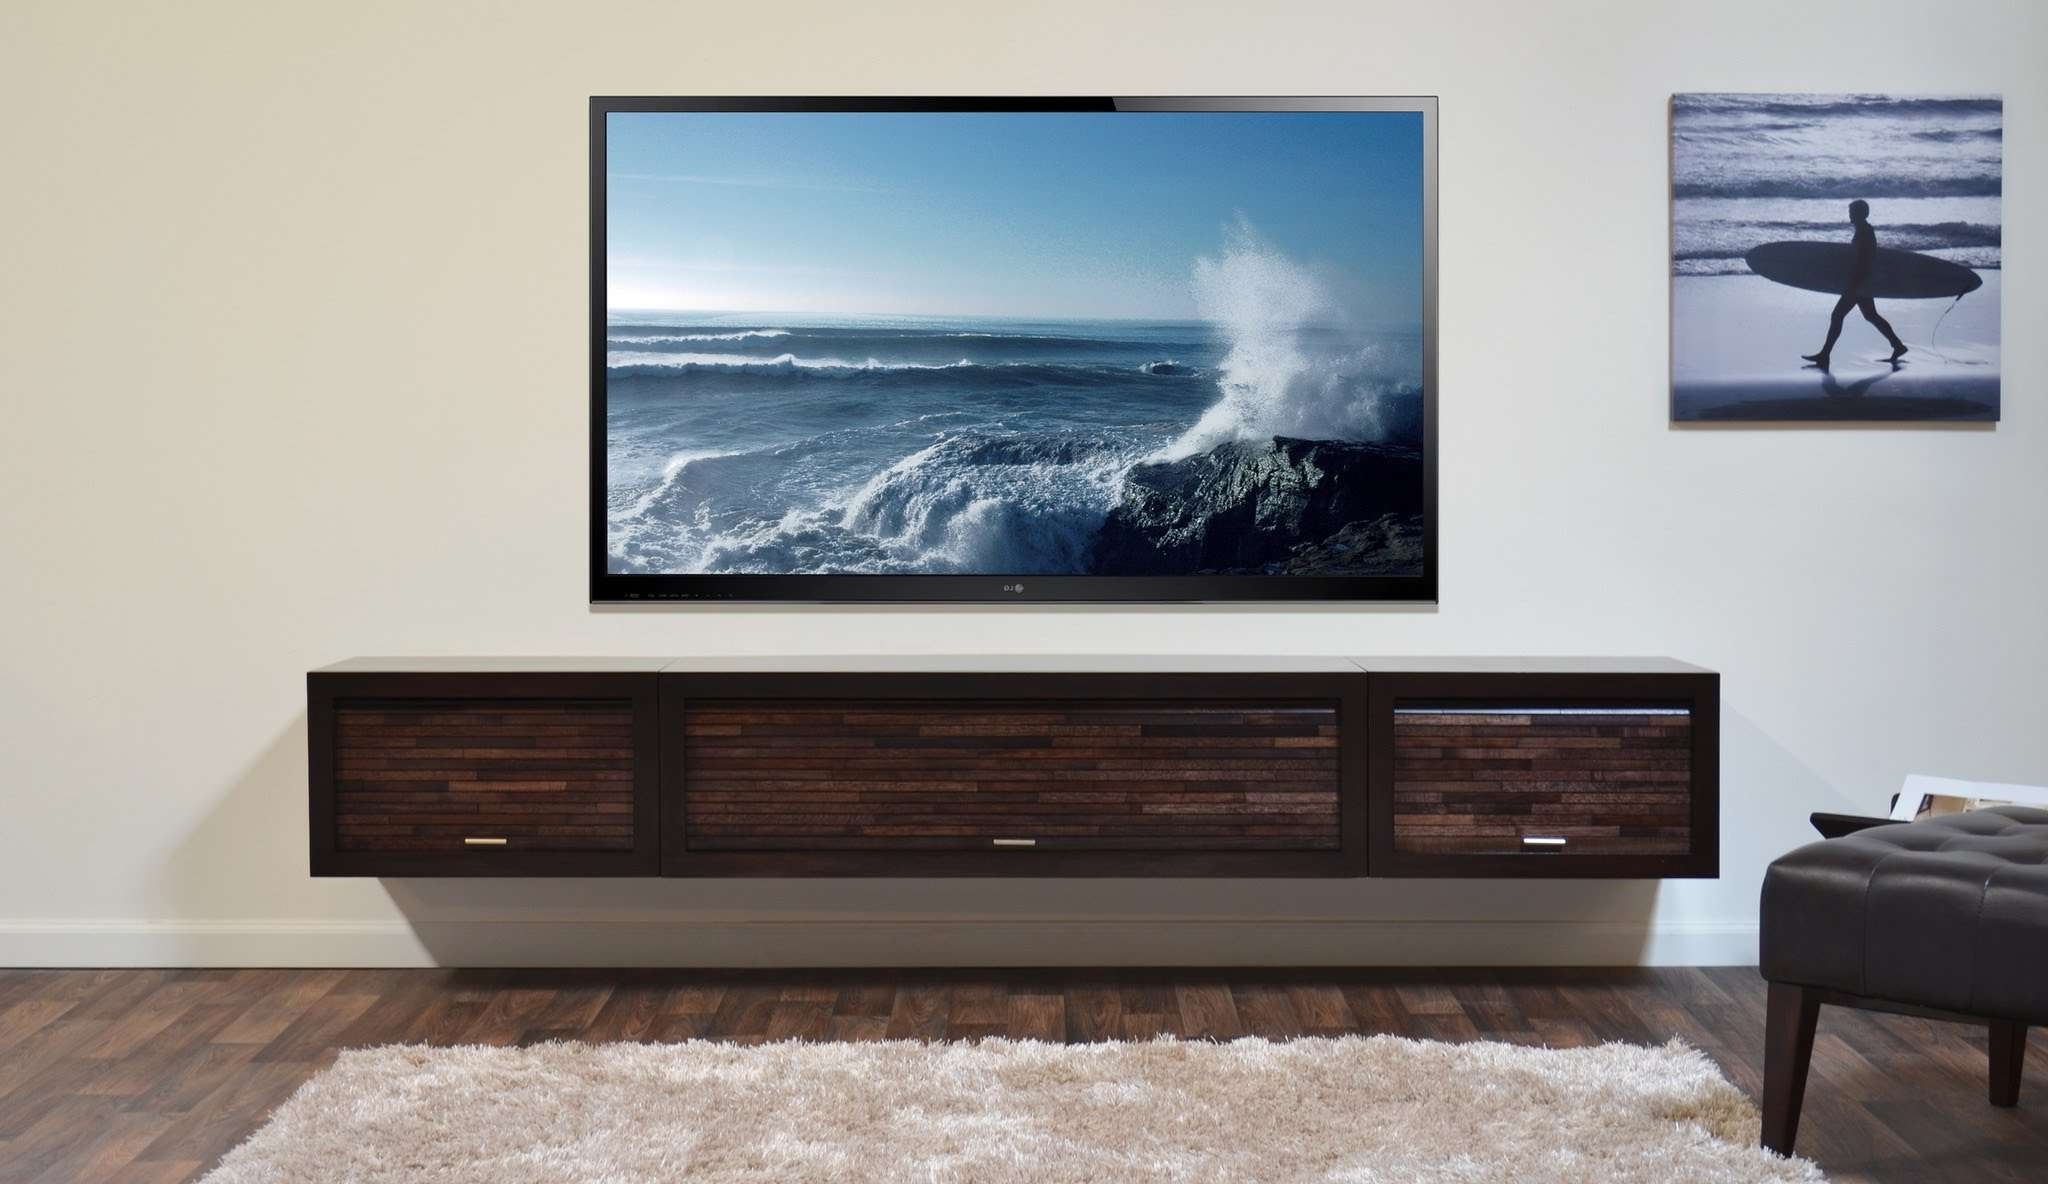 Diy Modern Tv Stand, Tv Stand Project On Pinterest – Youtube Within Modern Tv Cabinets (View 17 of 20)